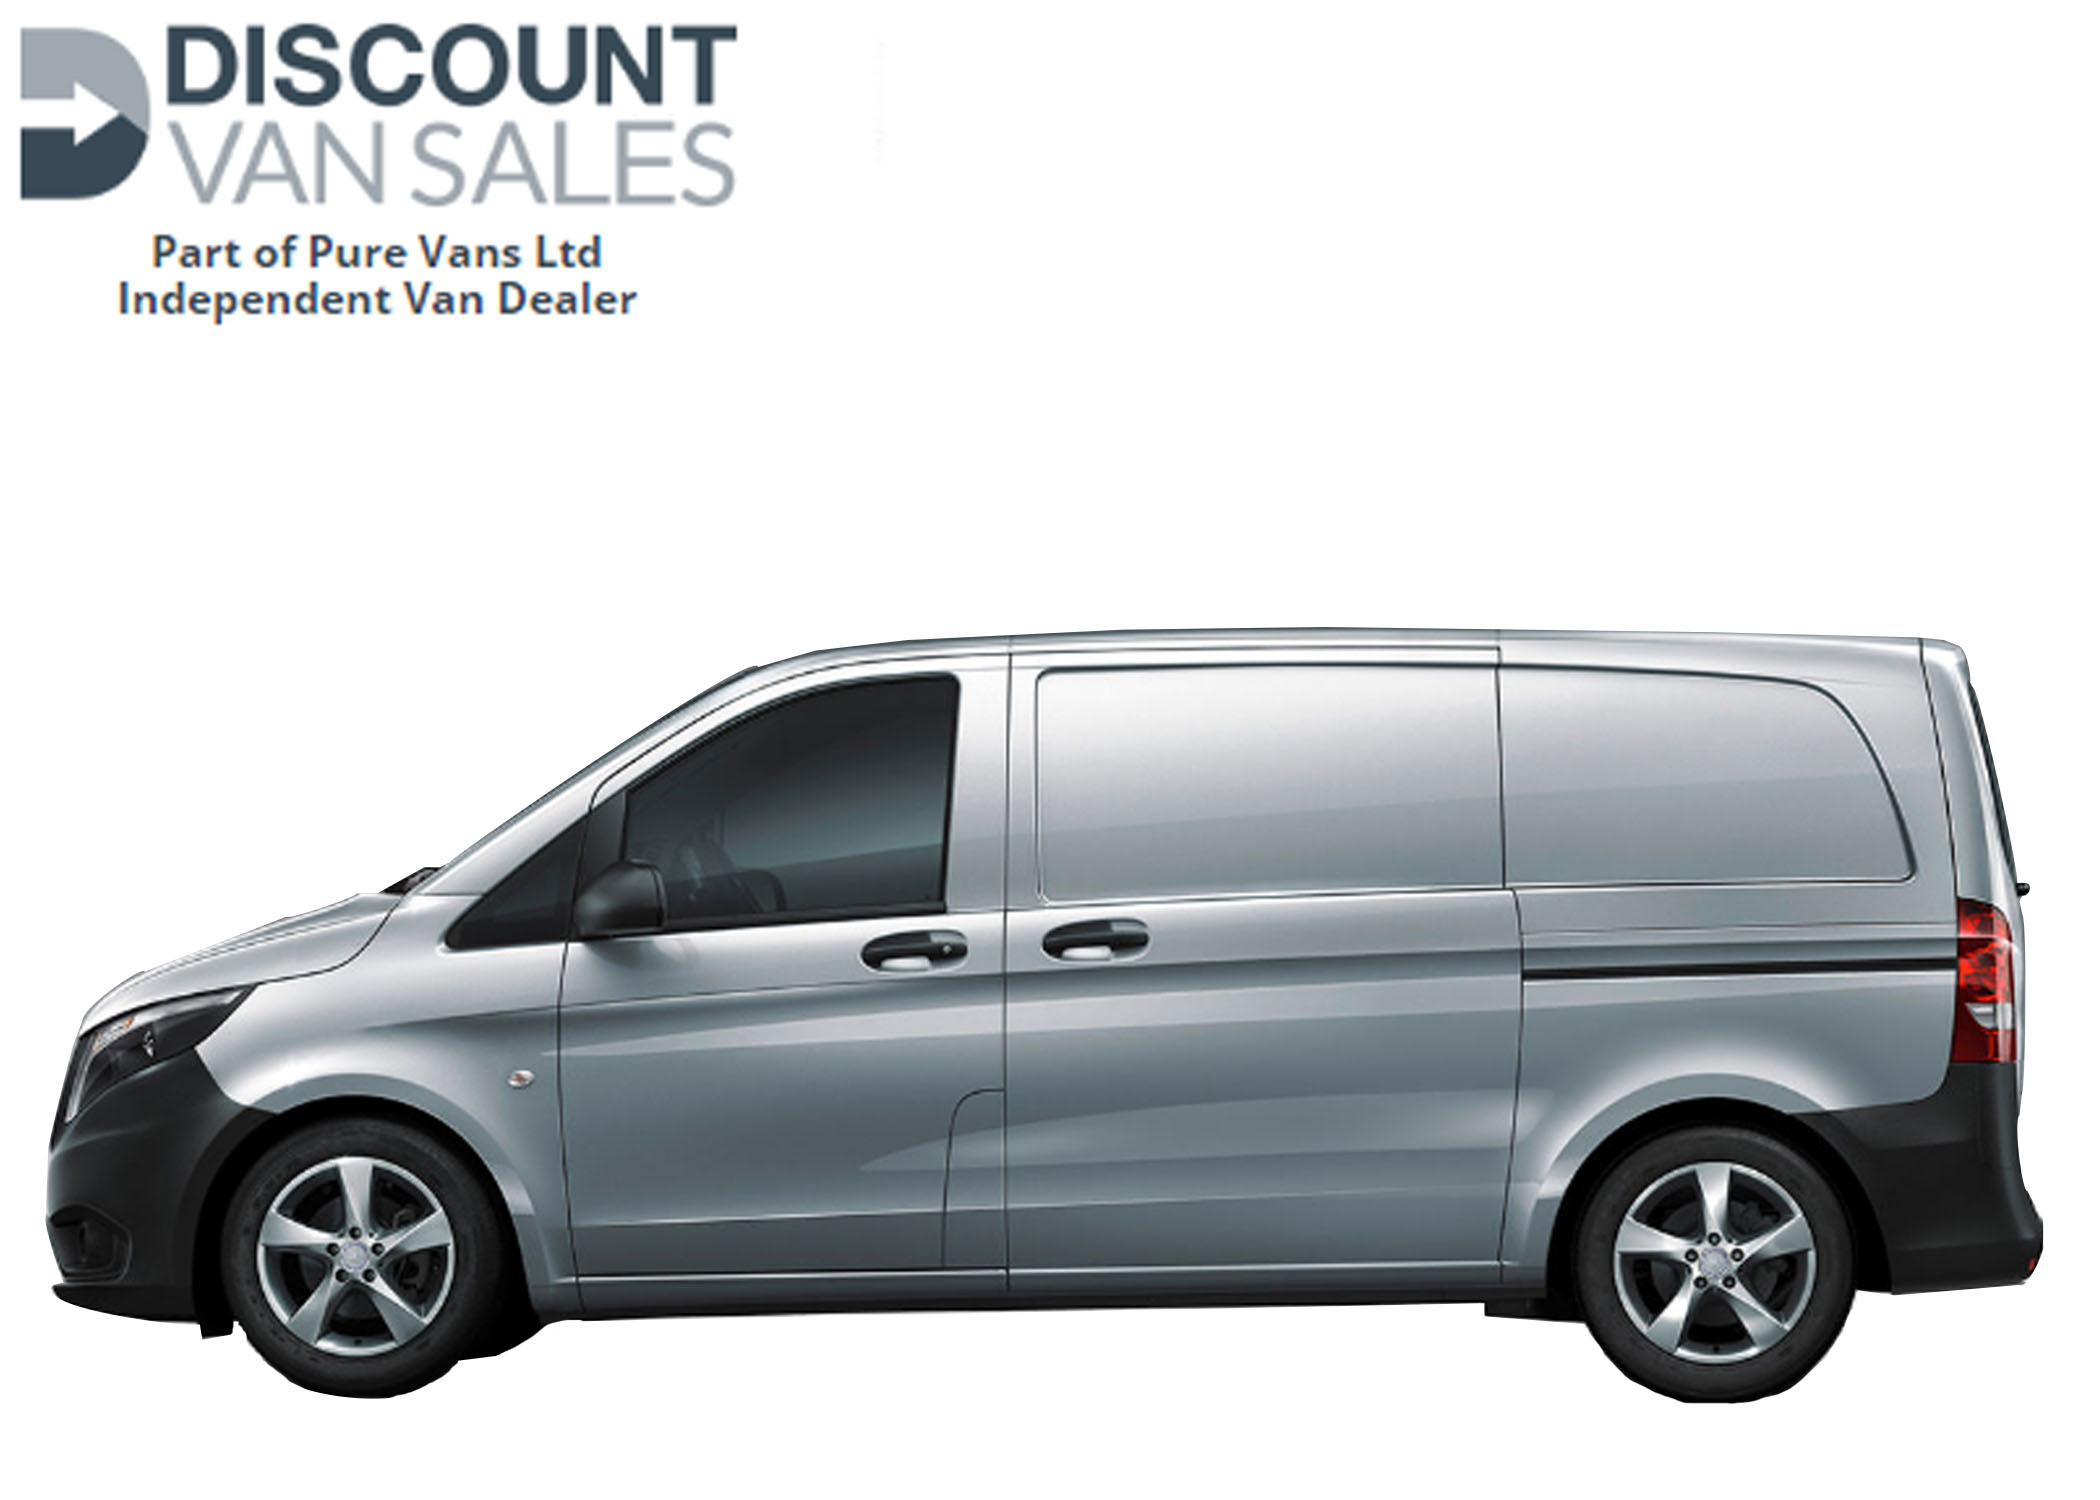 MERCEDES VITO side view.jpg